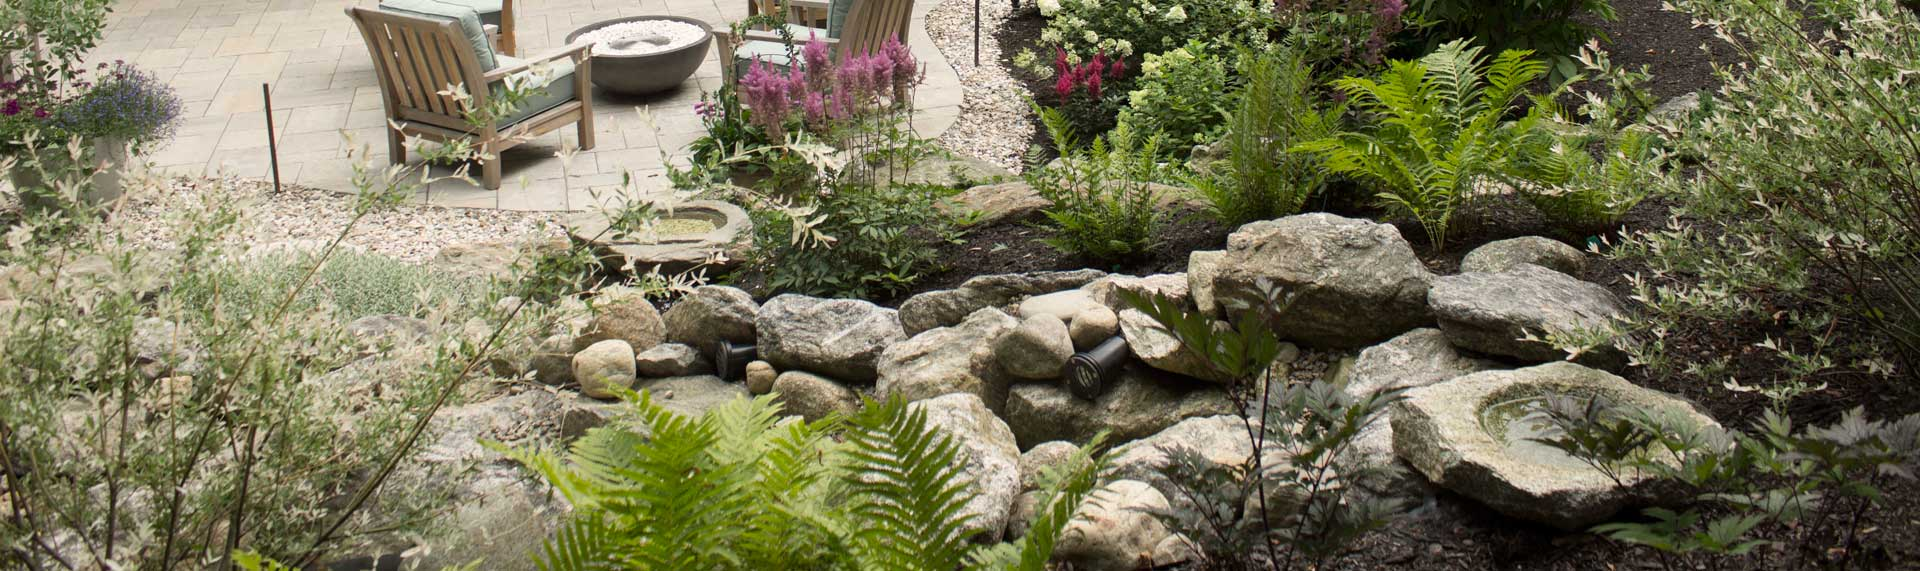 Landscape designer kennebunkport maine landscaping for Creating a landscape